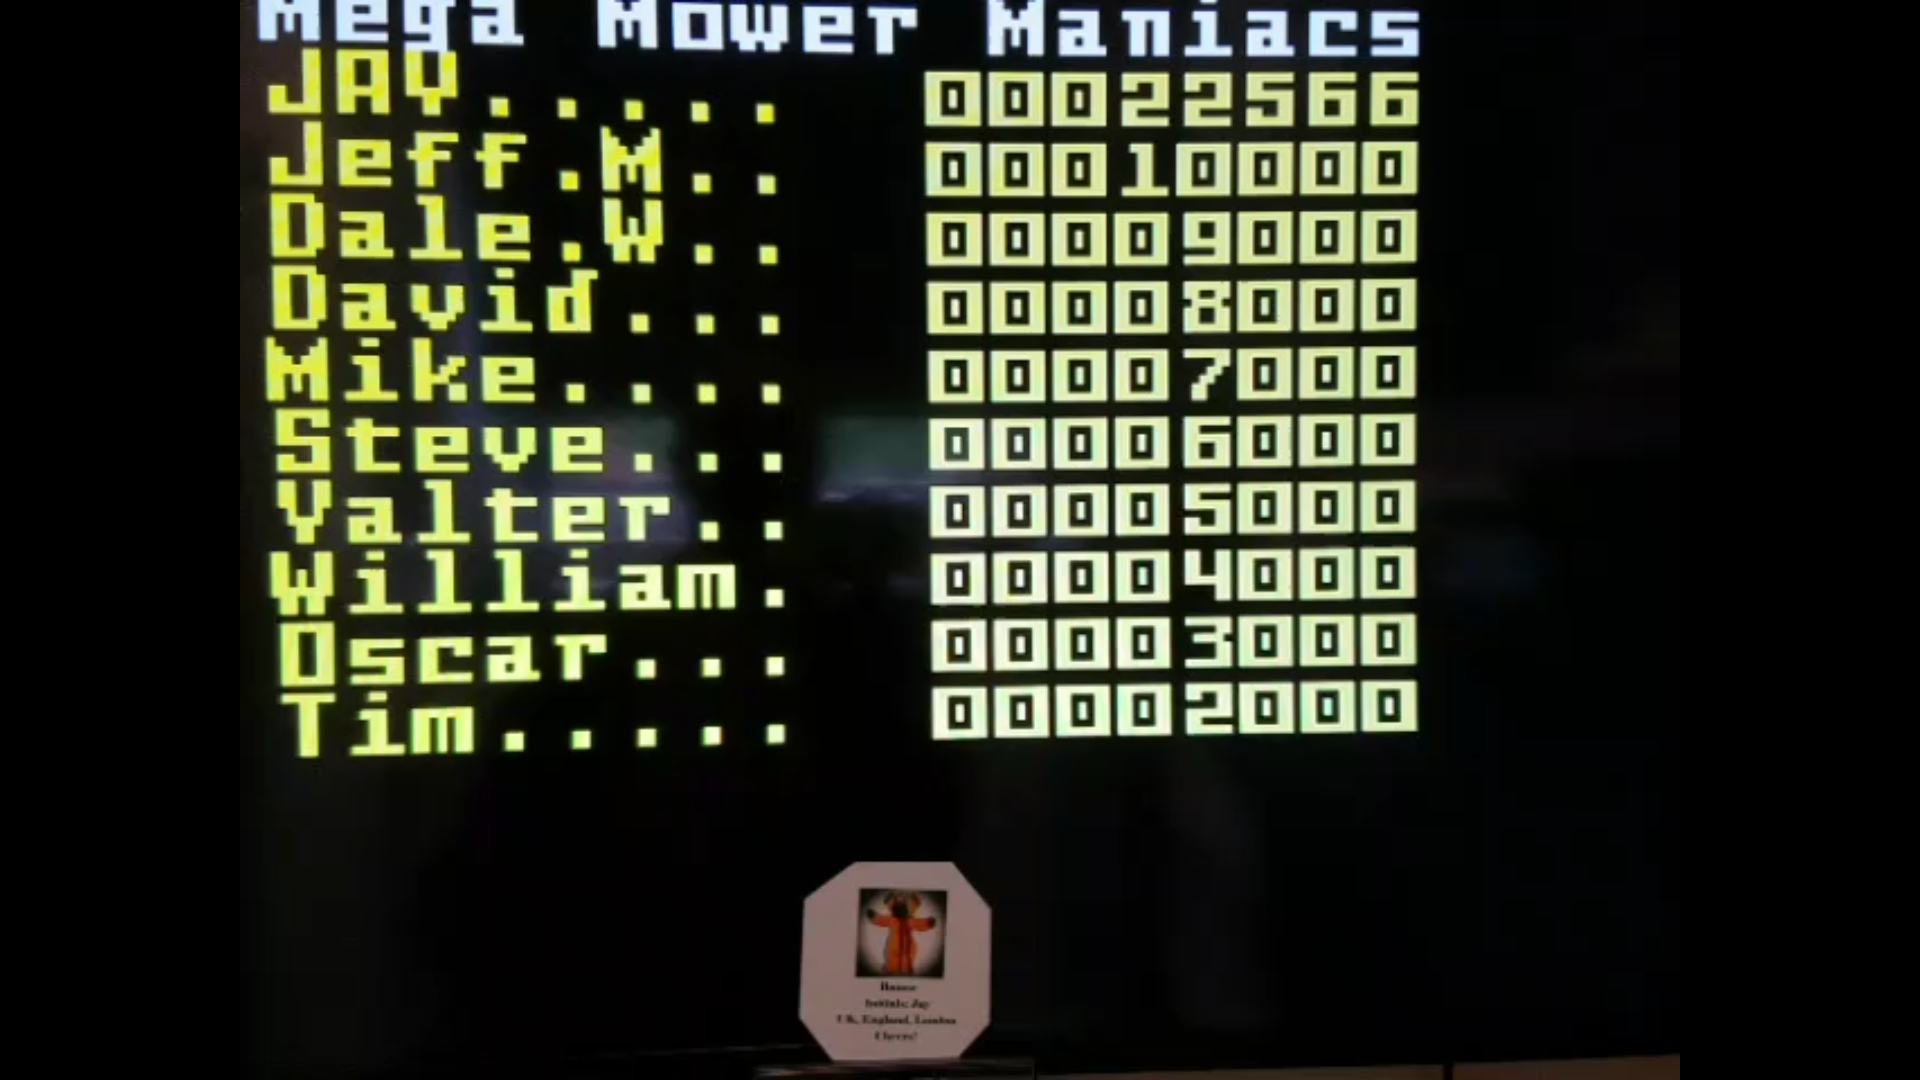 Bamse: Hover Bovver [Hard] (Intellivision) 22,566 points on 2019-05-21 11:00:15